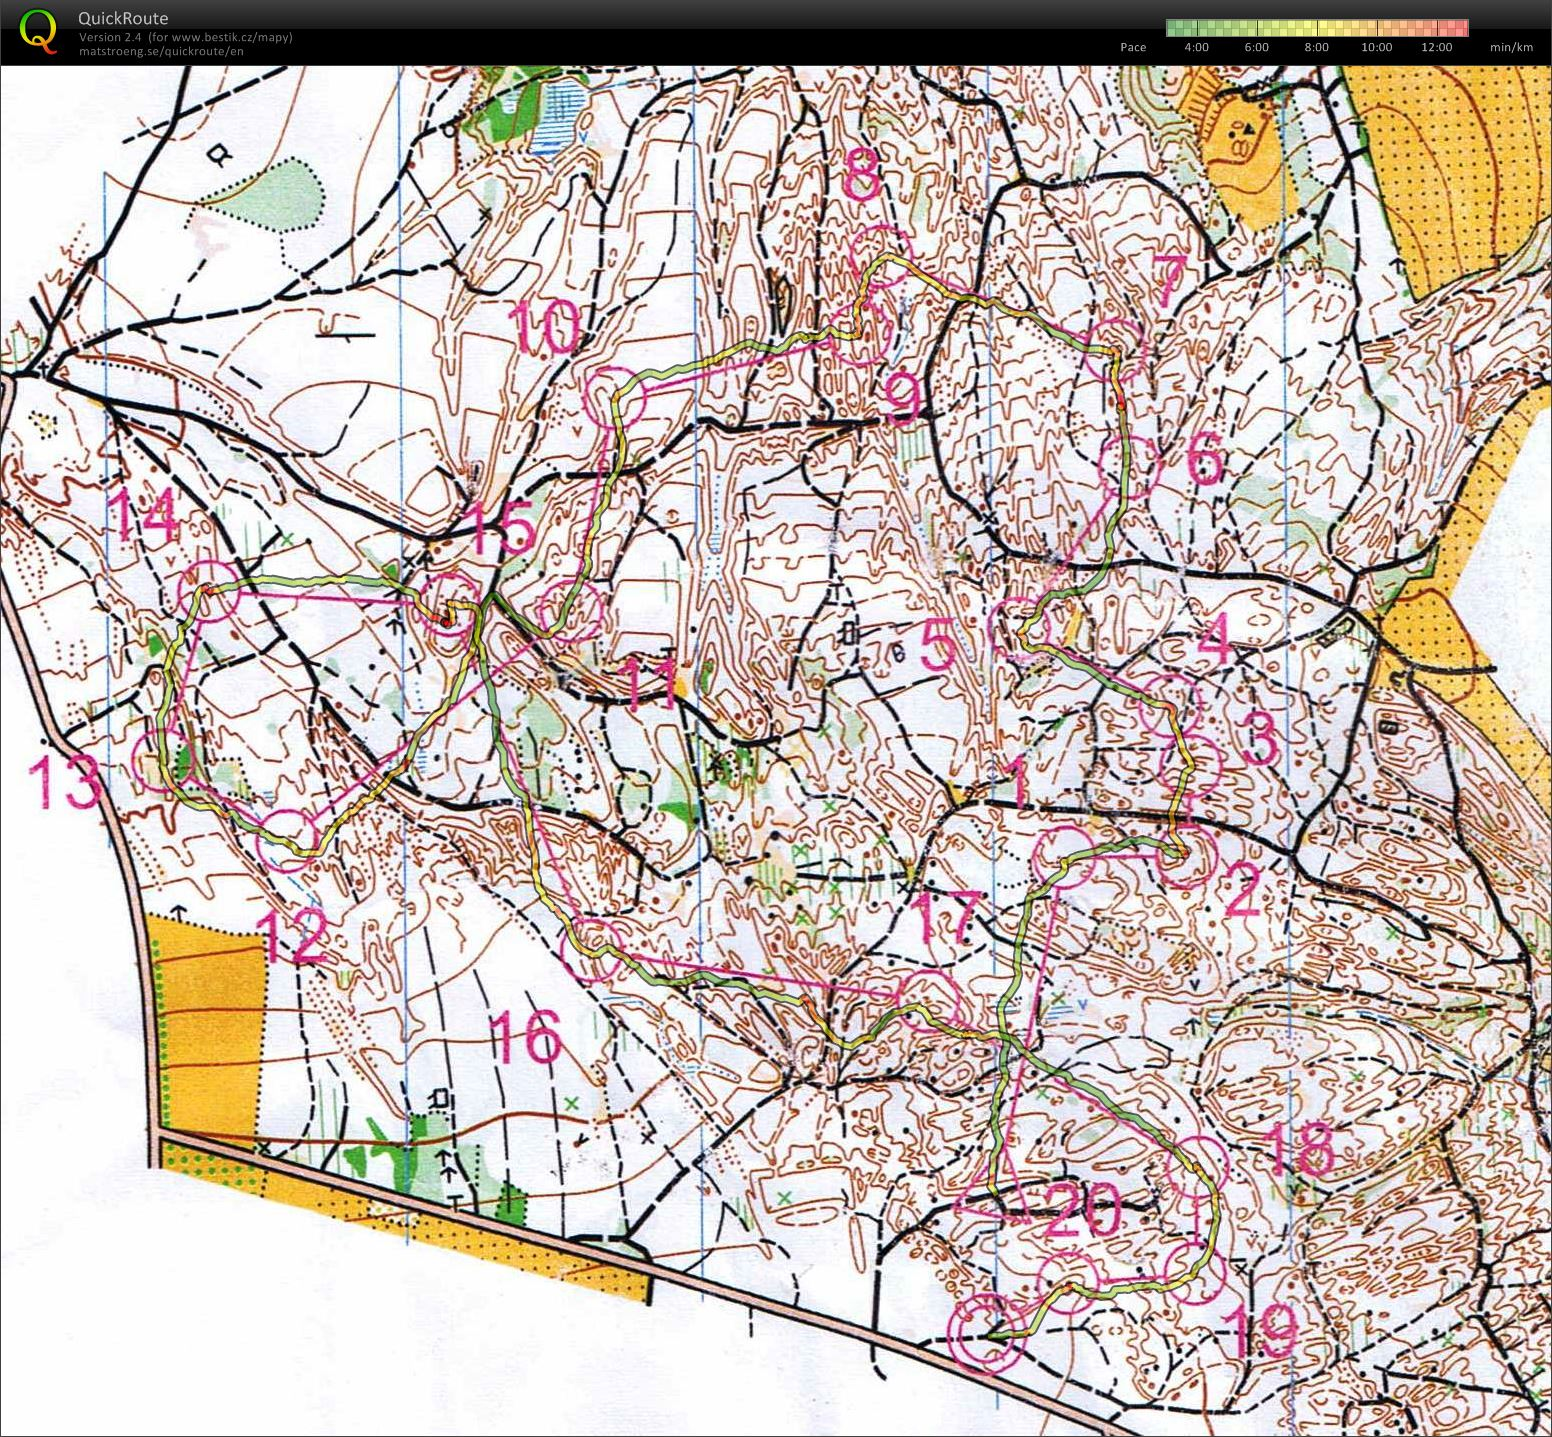 Austria Night Champs - training (18/10/2014)